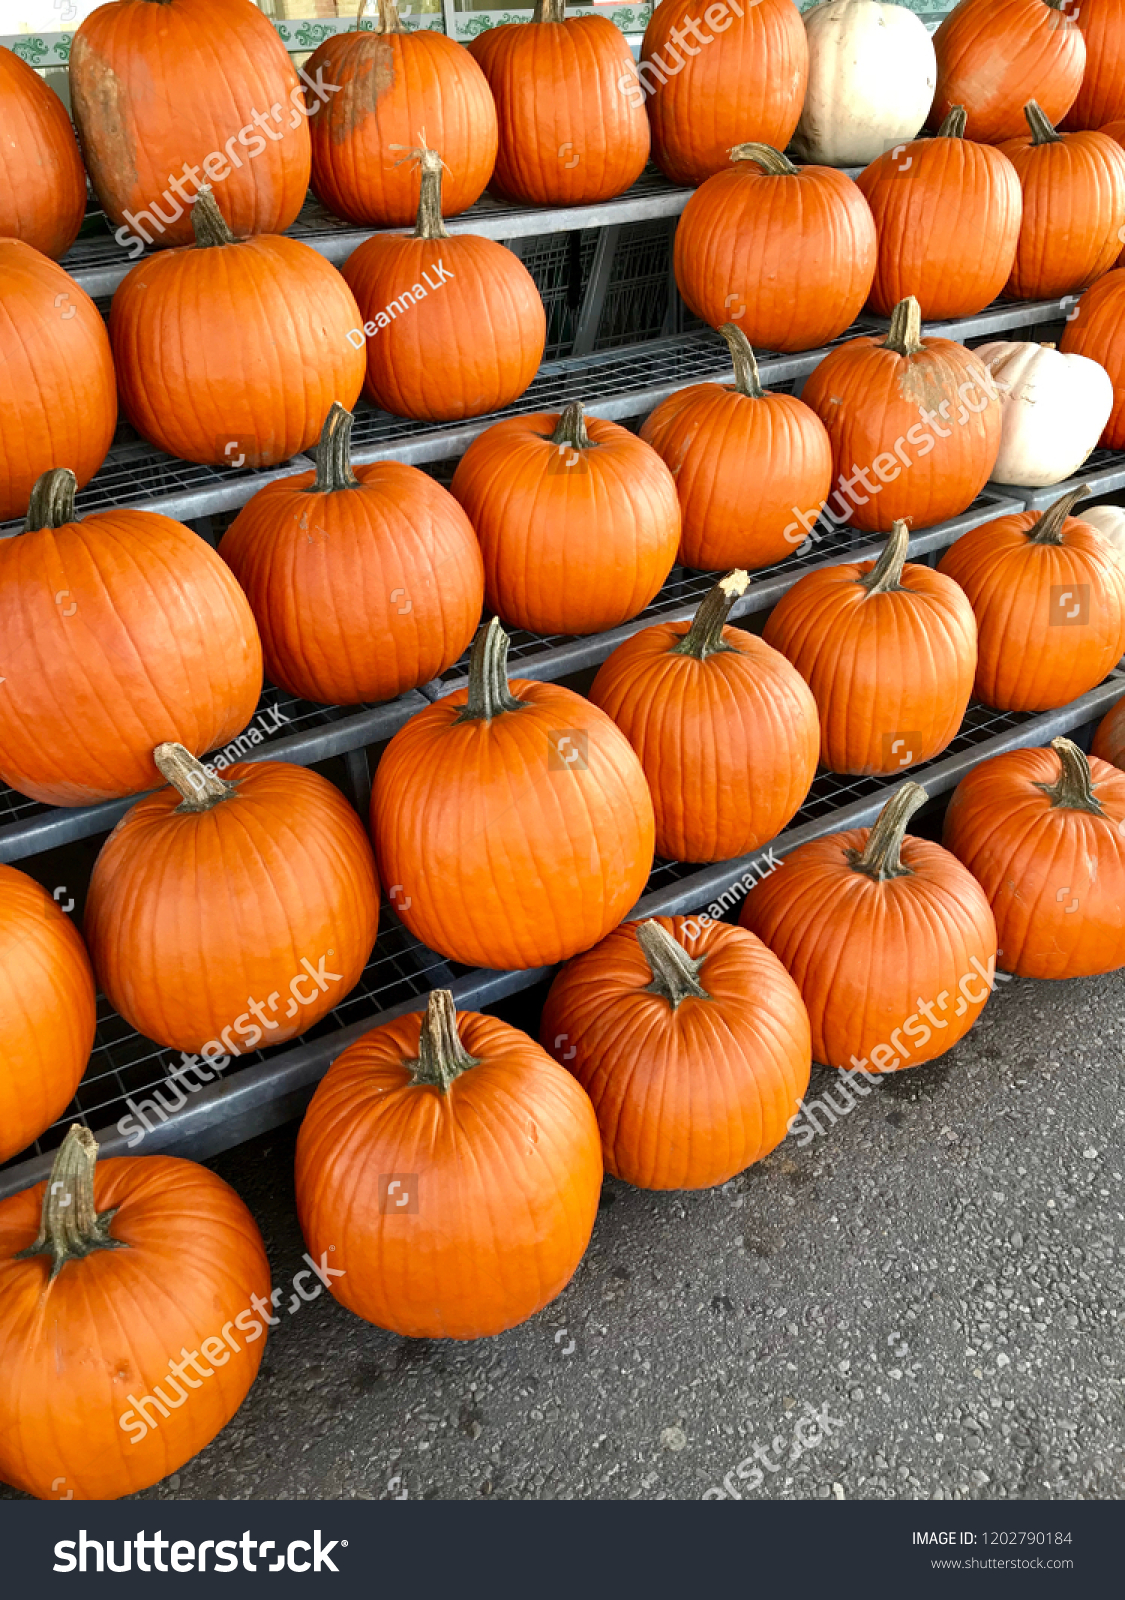 Great spots to go pumpkin picking close to bradford ourbwg. Ca.